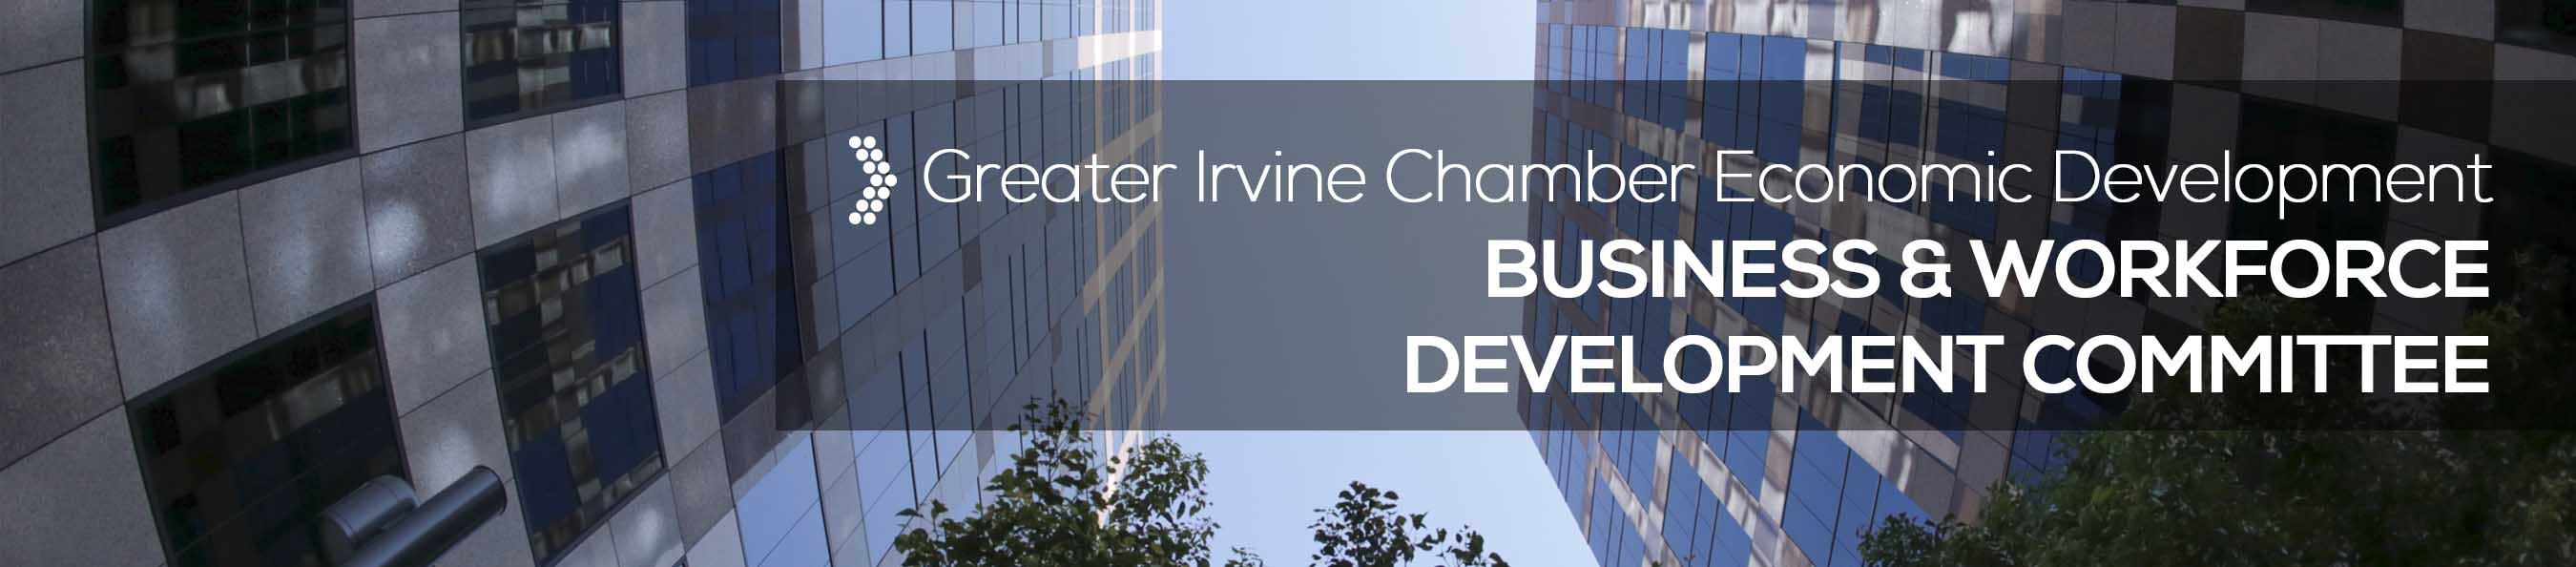 Corporate buildings with white text overlay reading: Business and Workforce Development Committee